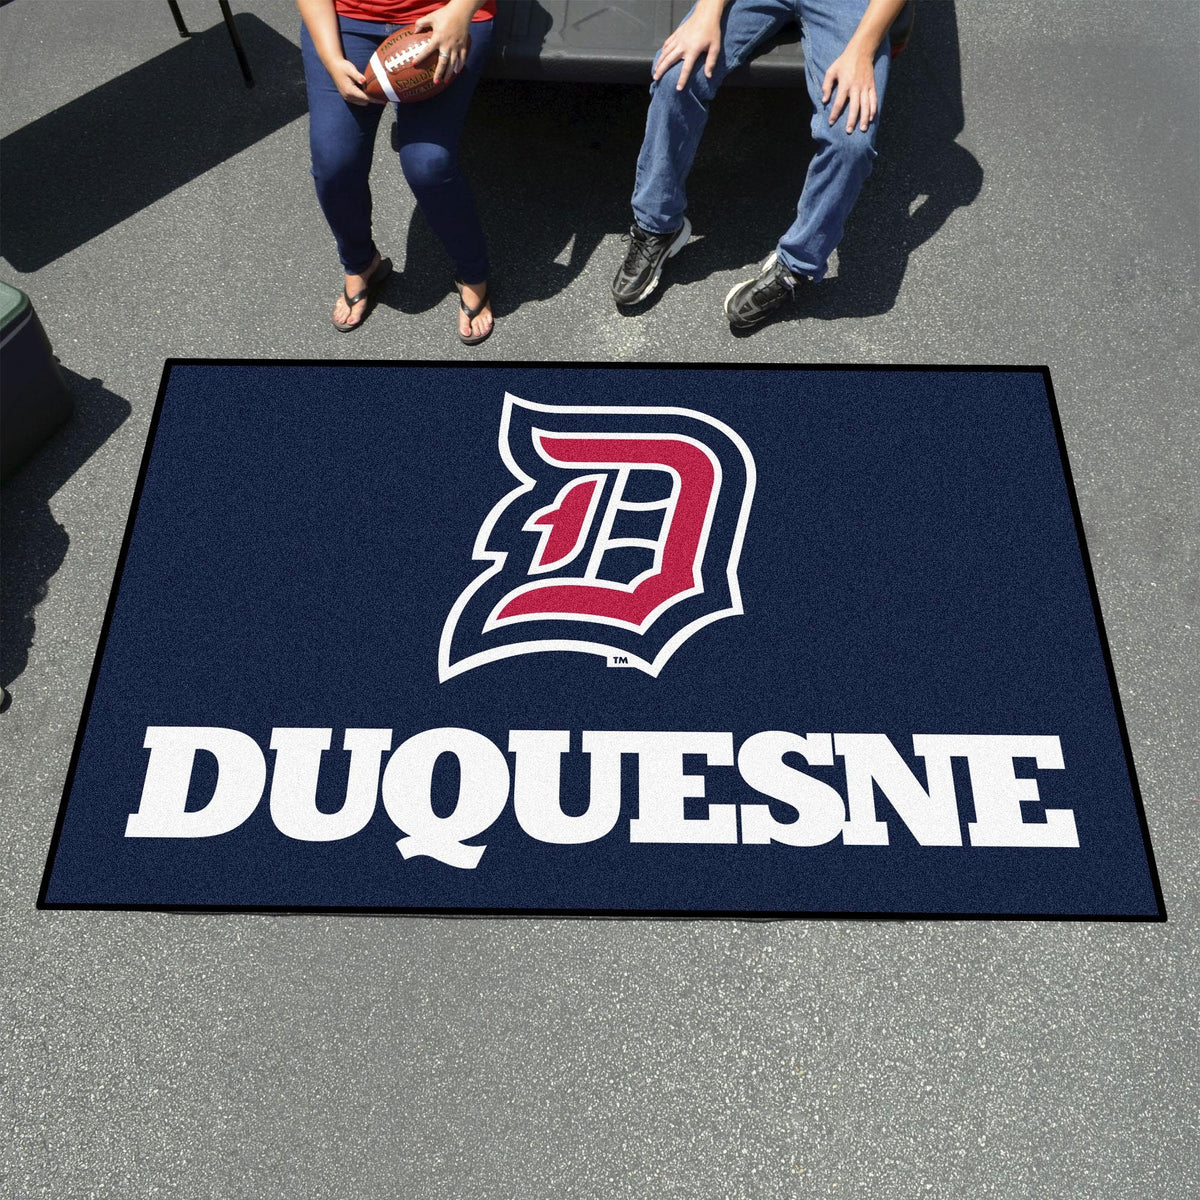 Collegiate - Ulti-Mat: A - L Collegiate Mats, Rectangular Mats, Ulti-Mat, Collegiate, Home Fan Mats Duquesne